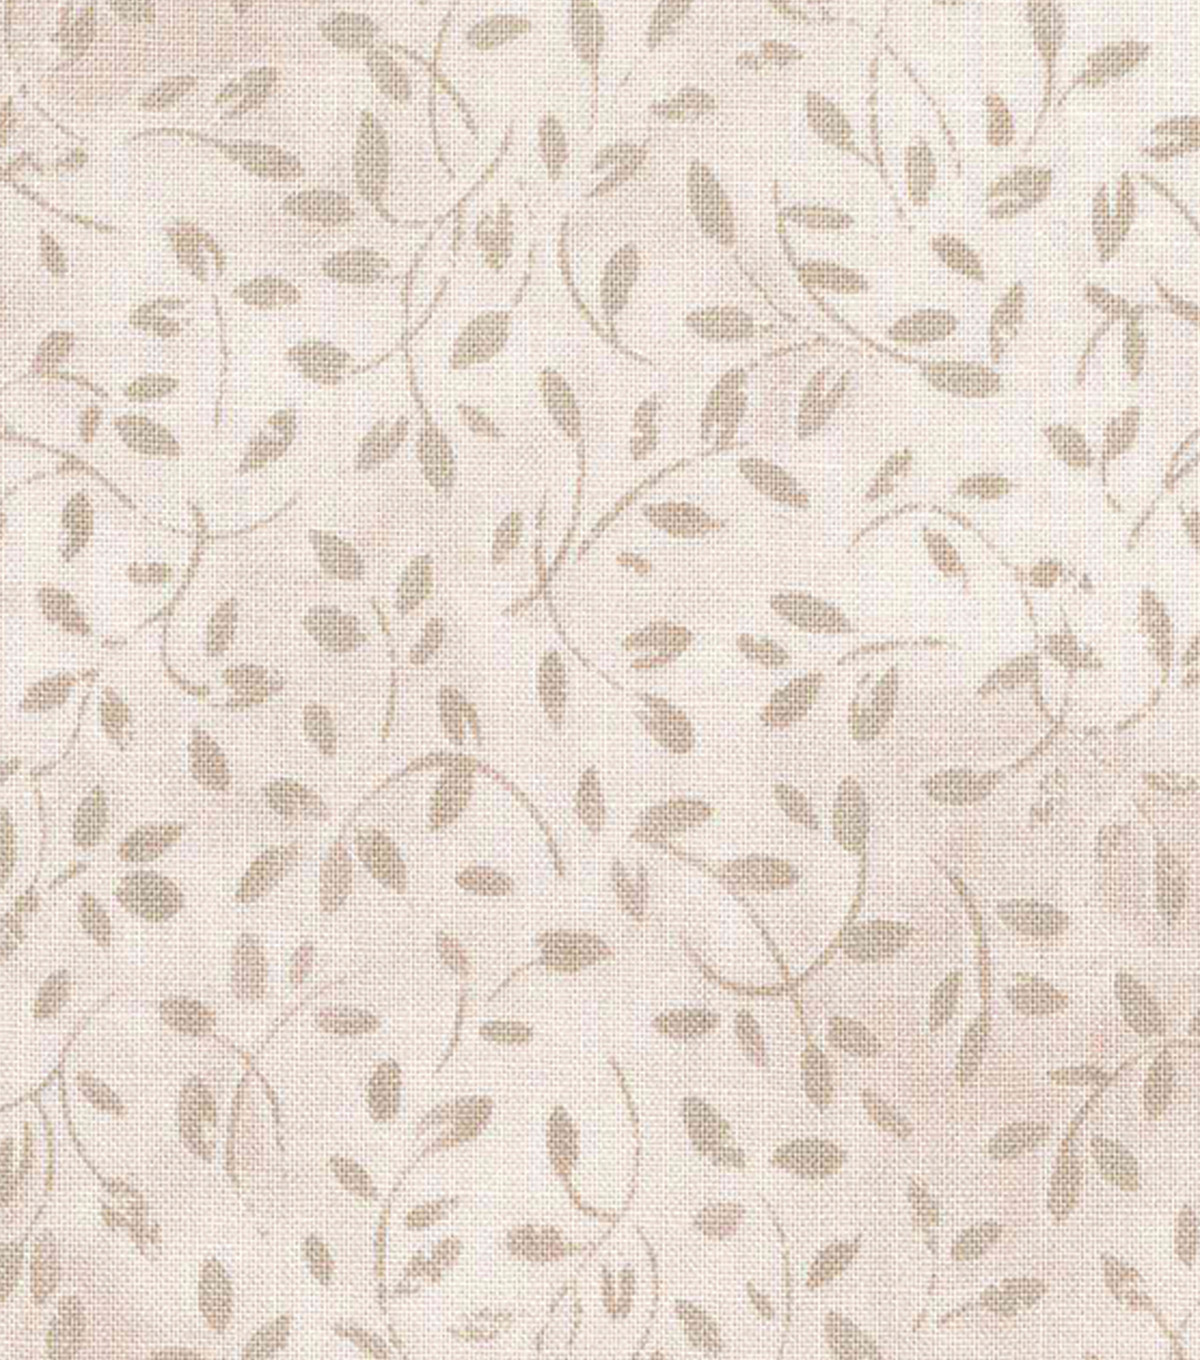 Keepsake Calico Cotton Fabric-Vines on Tan